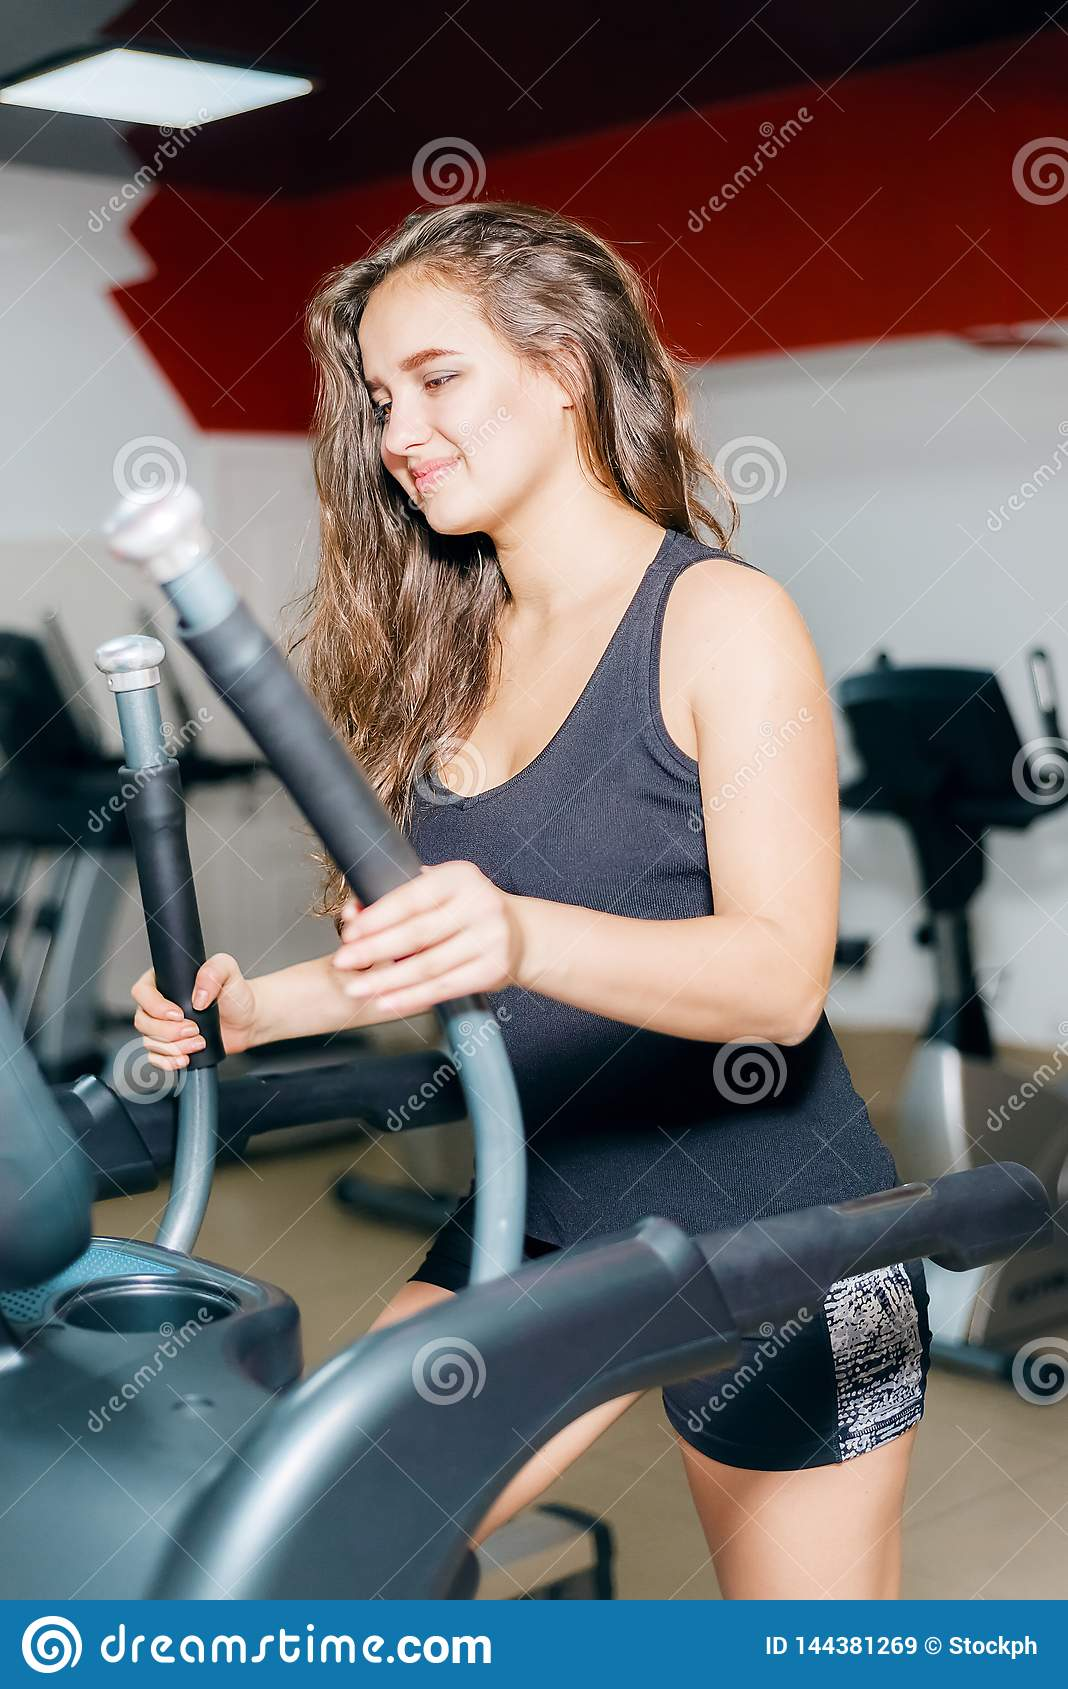 Athletic girl trains cardio on the stepper simulator. woman in the gym smiling